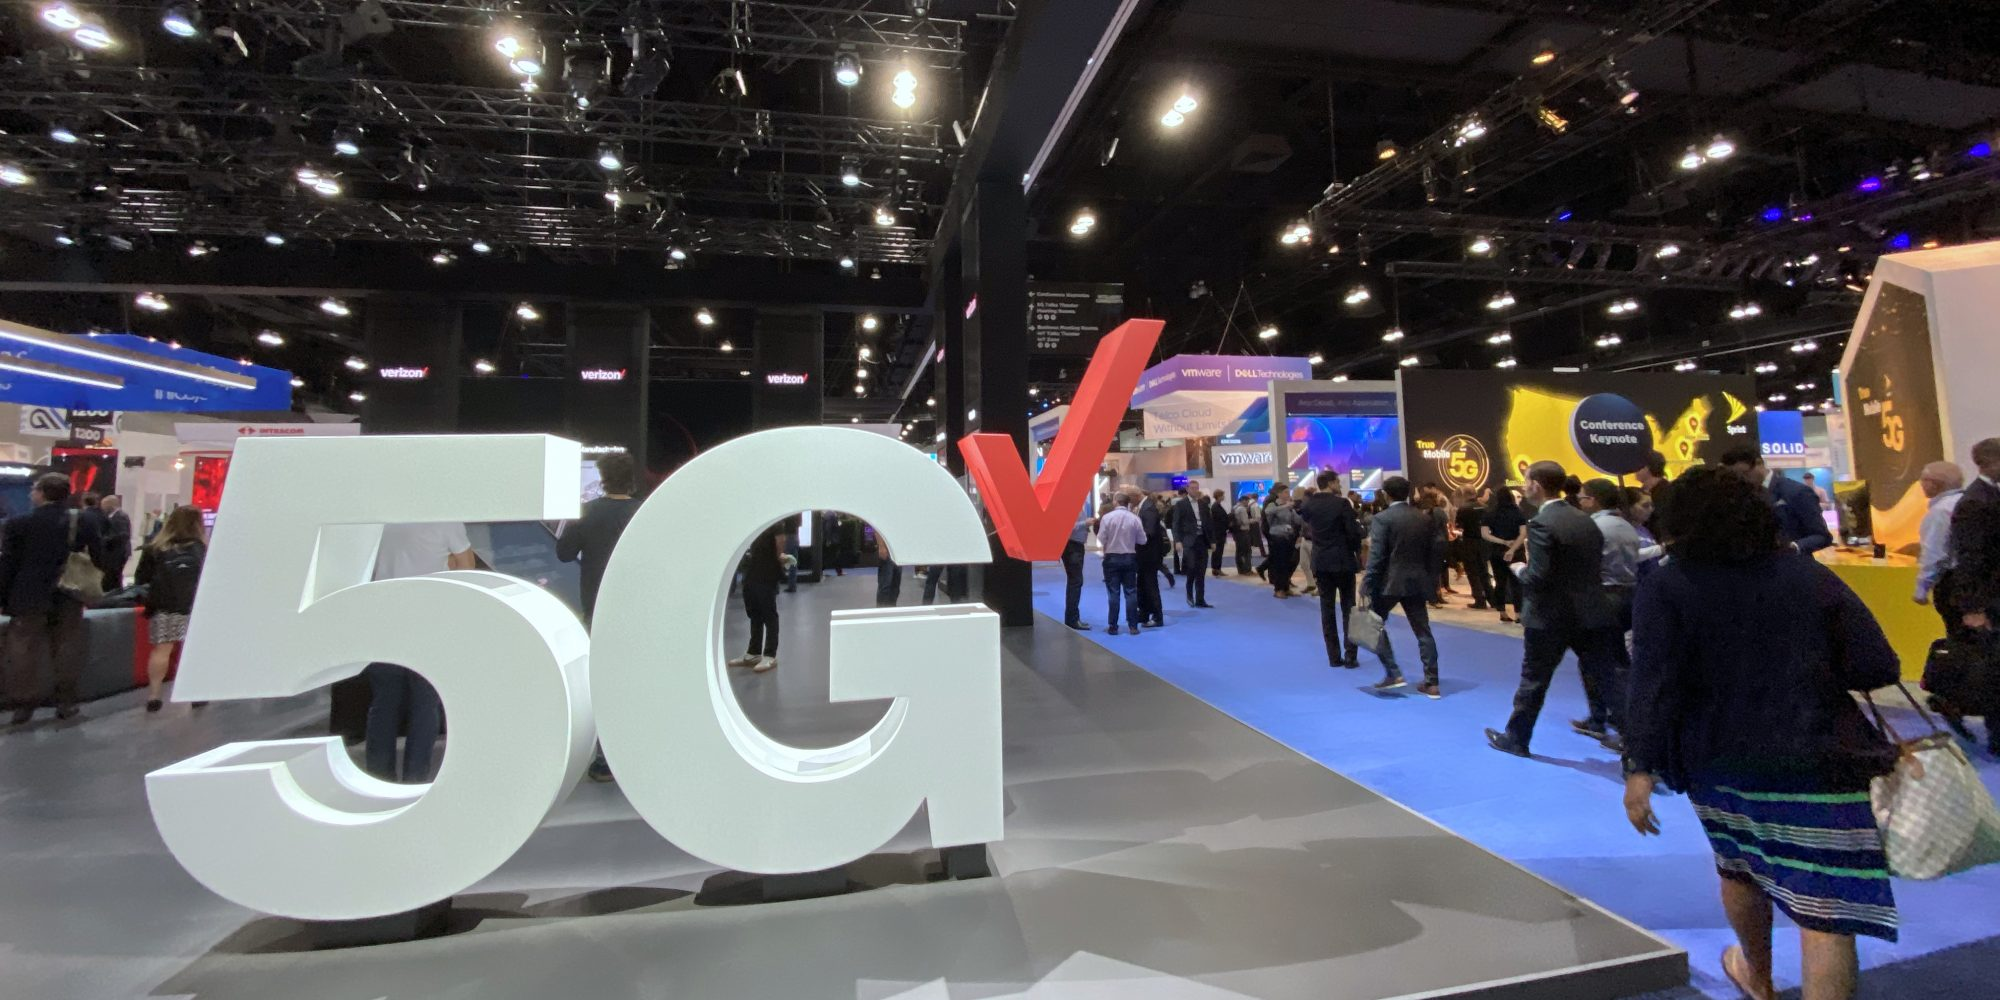 Verizon's 5G network covers parts of 31 cities, matching 2019 goal